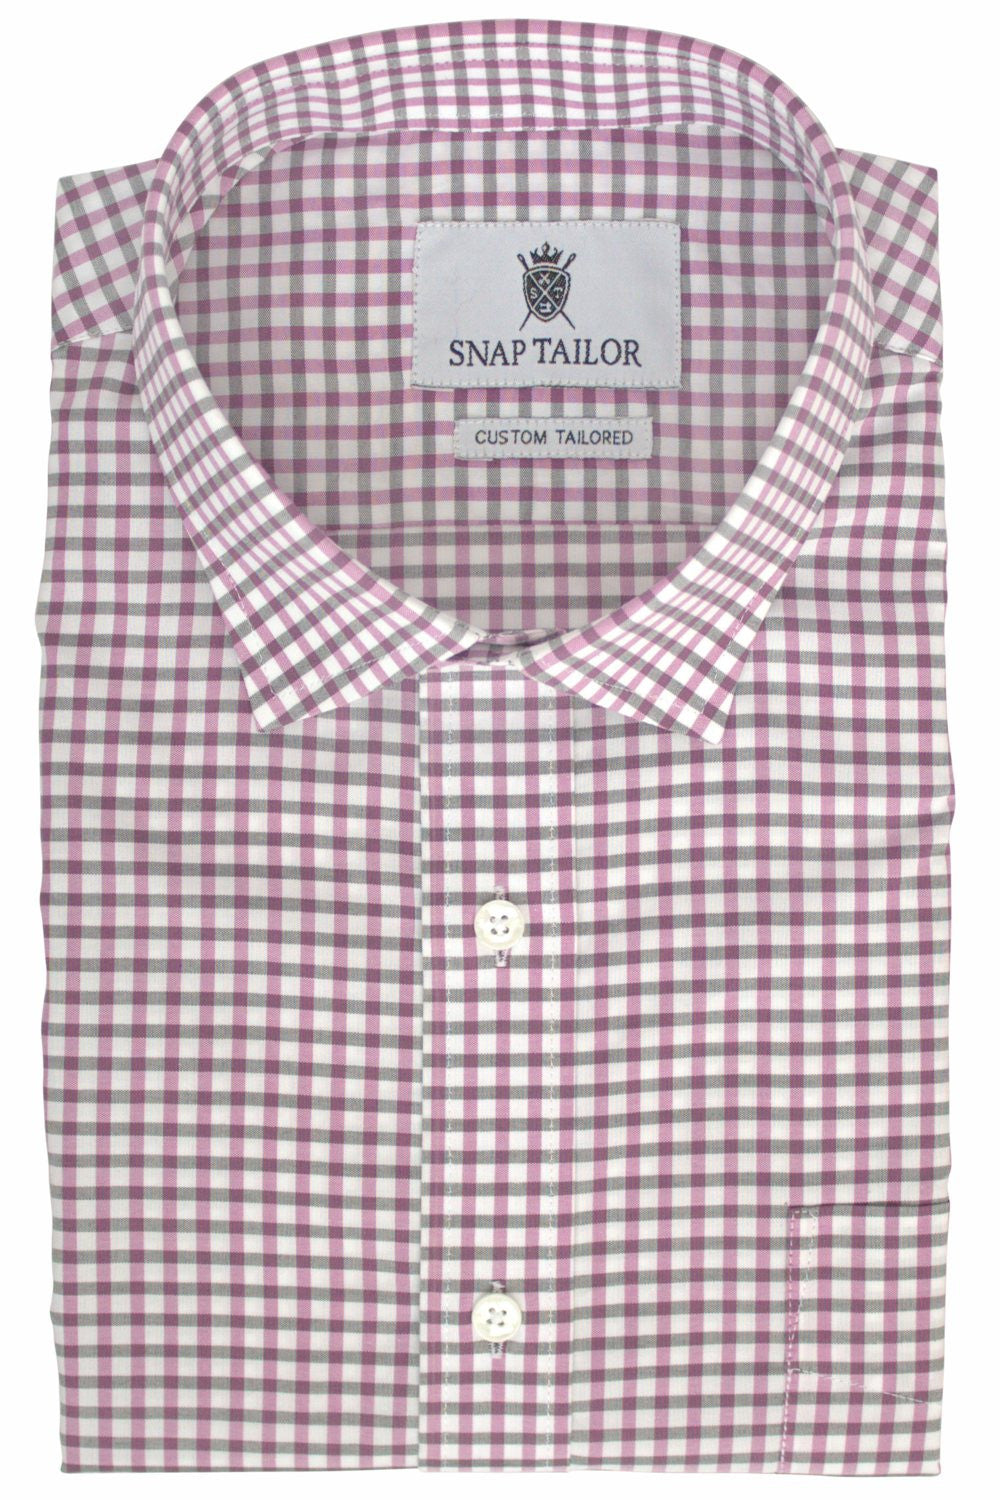 Photo of Earthy Gingham Casual Shirt in Magenta and Black